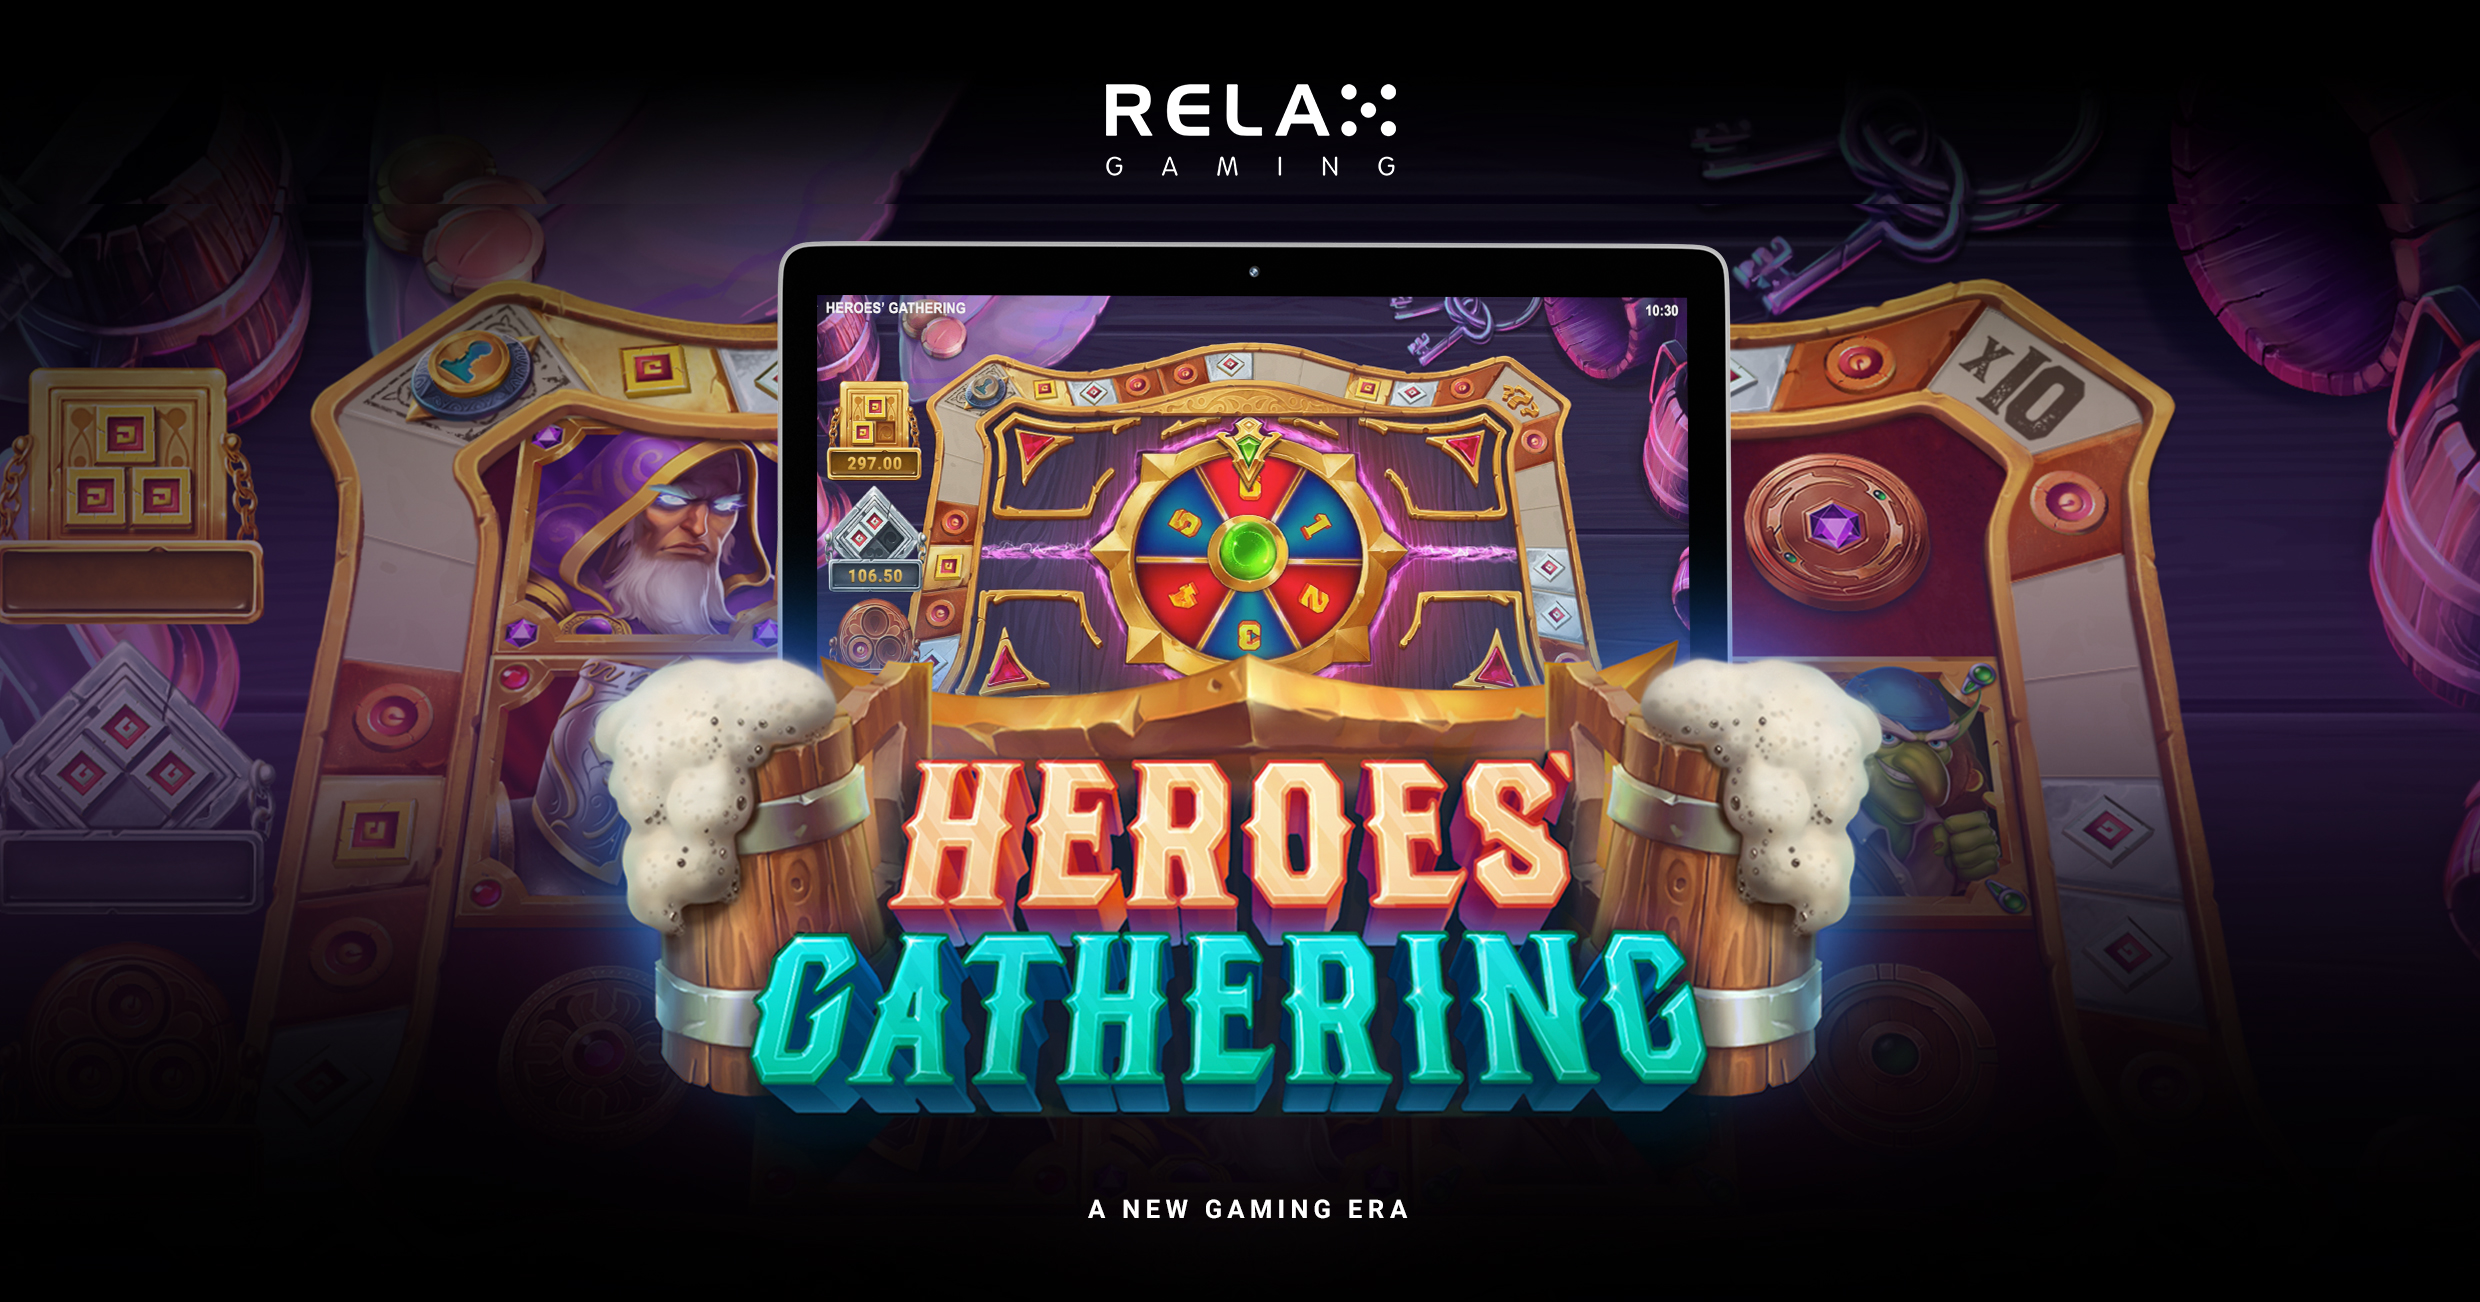 Exhilarating missions await in Relax Gaming's new slot Heroes' Gathering